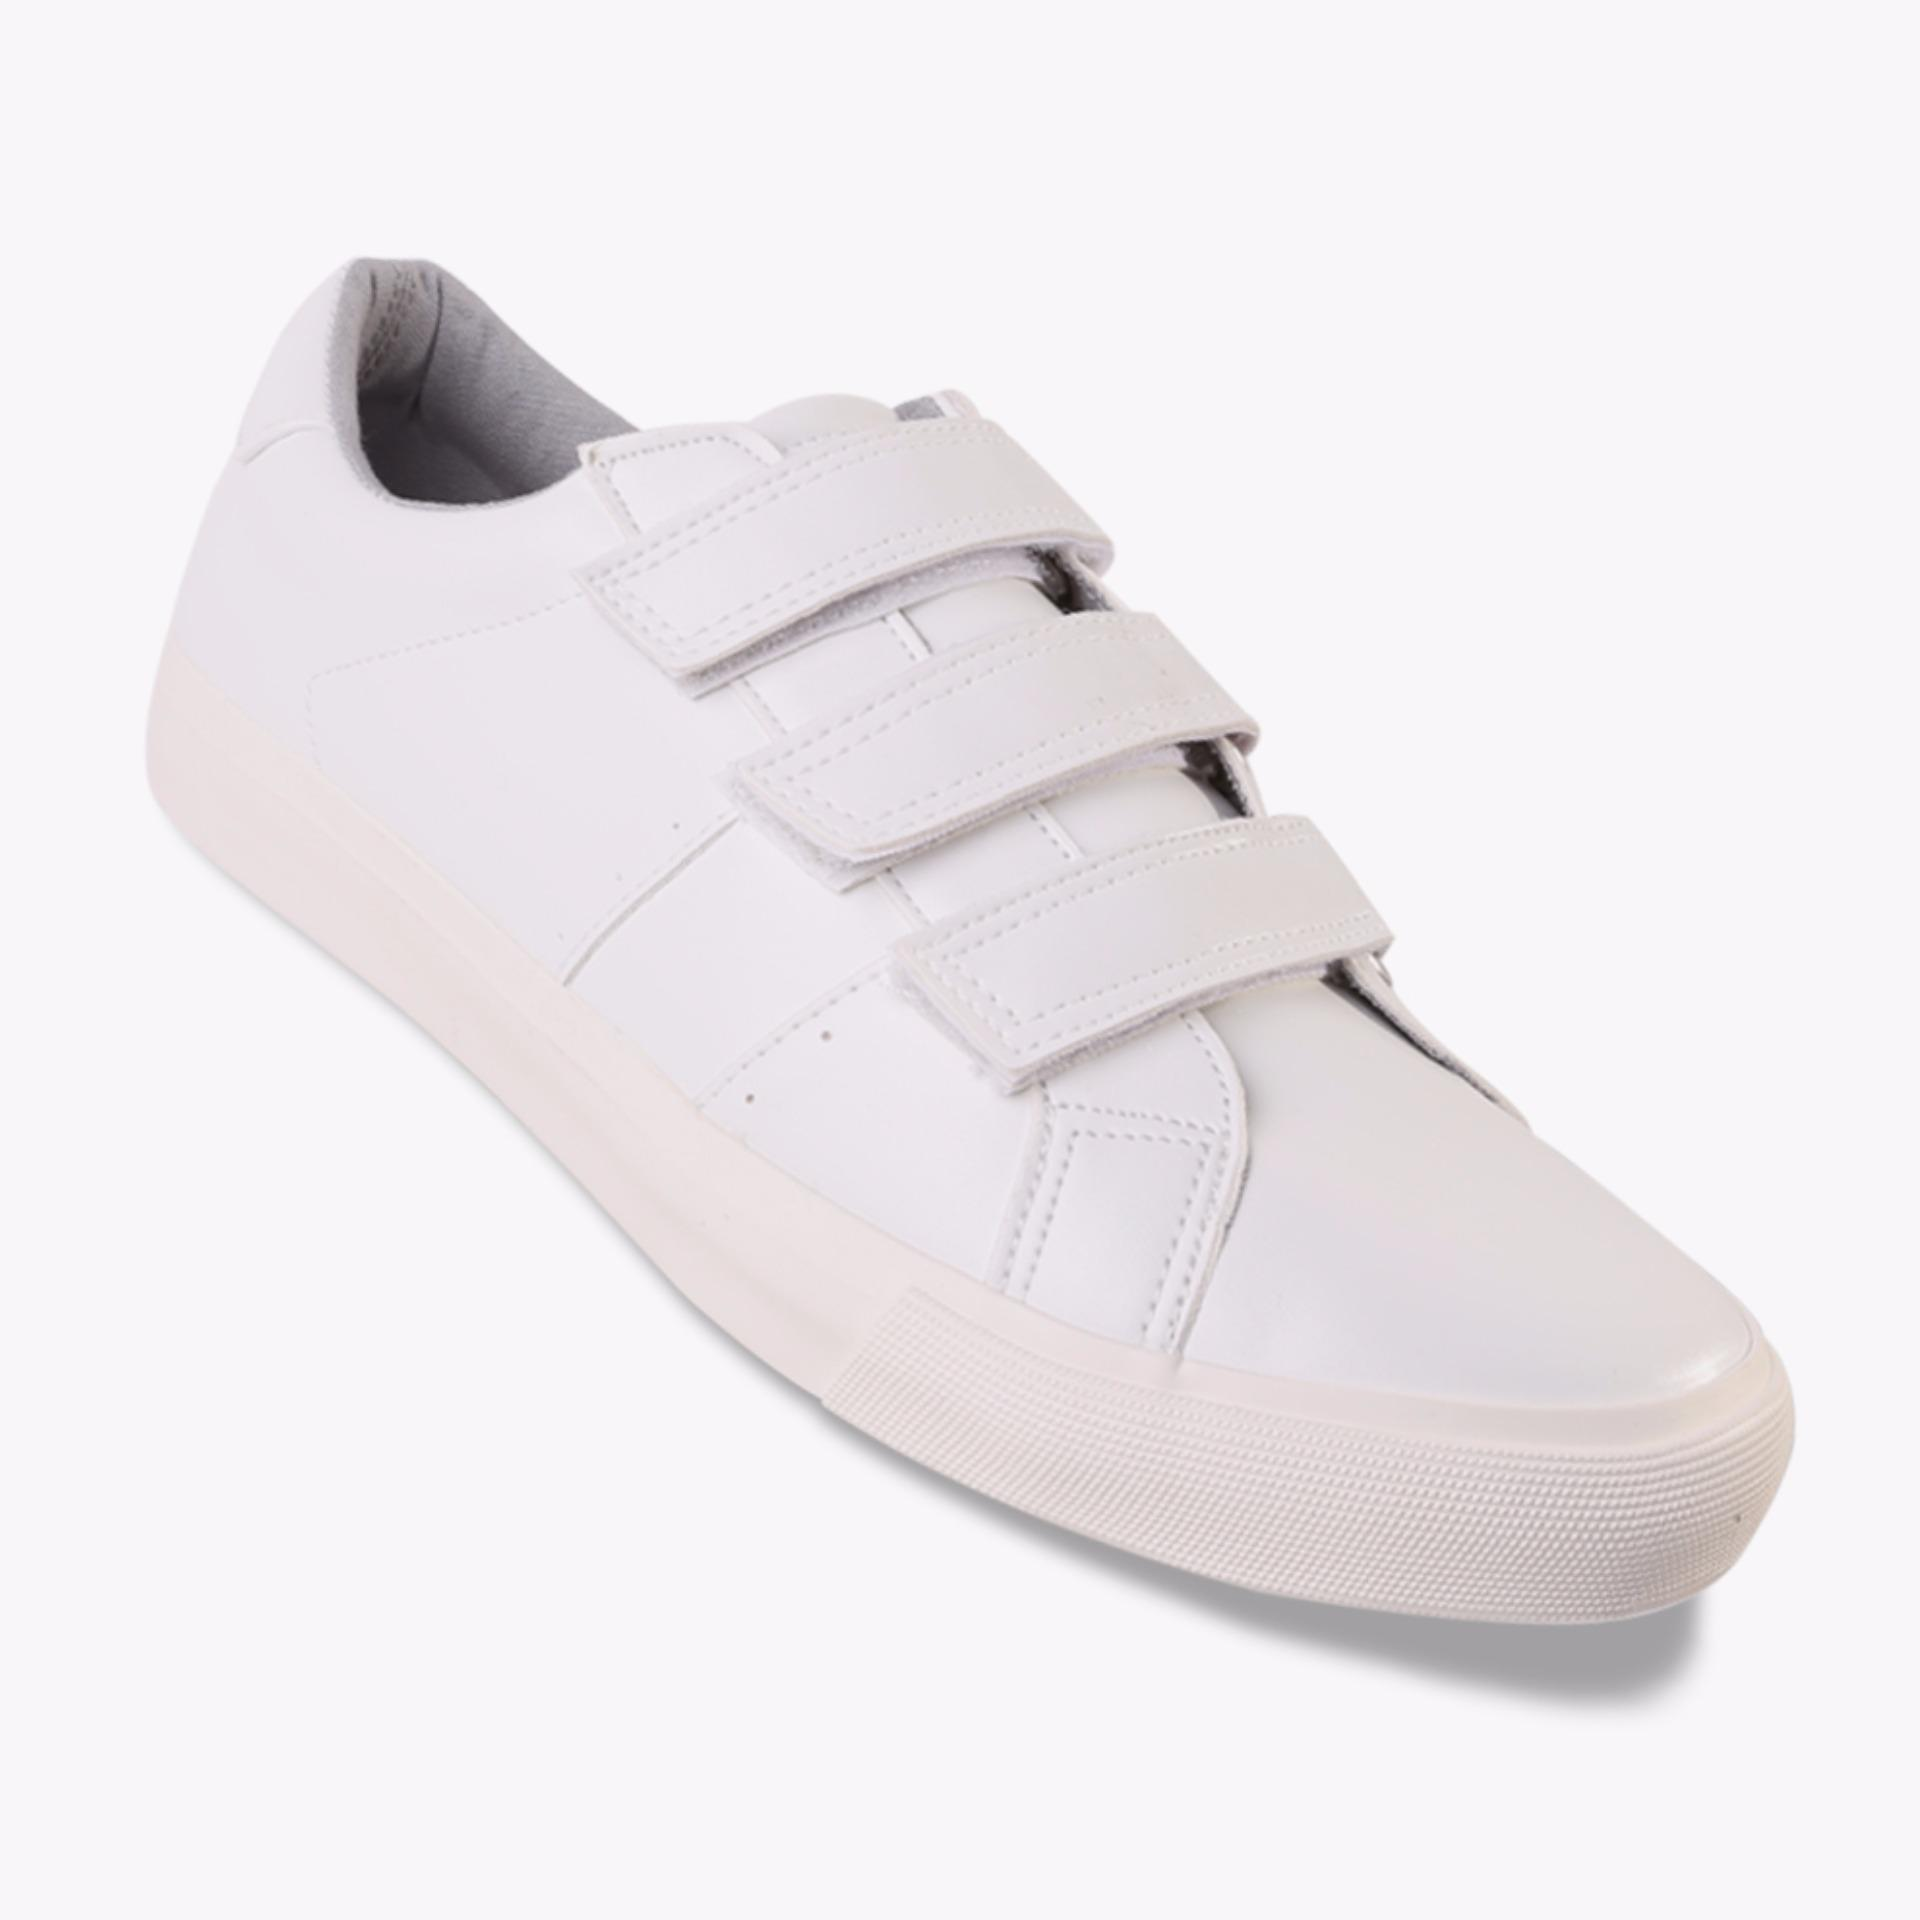 Spesifikasi Airwalk Julian Unisex Sneakers Shoes Putih Paling Bagus